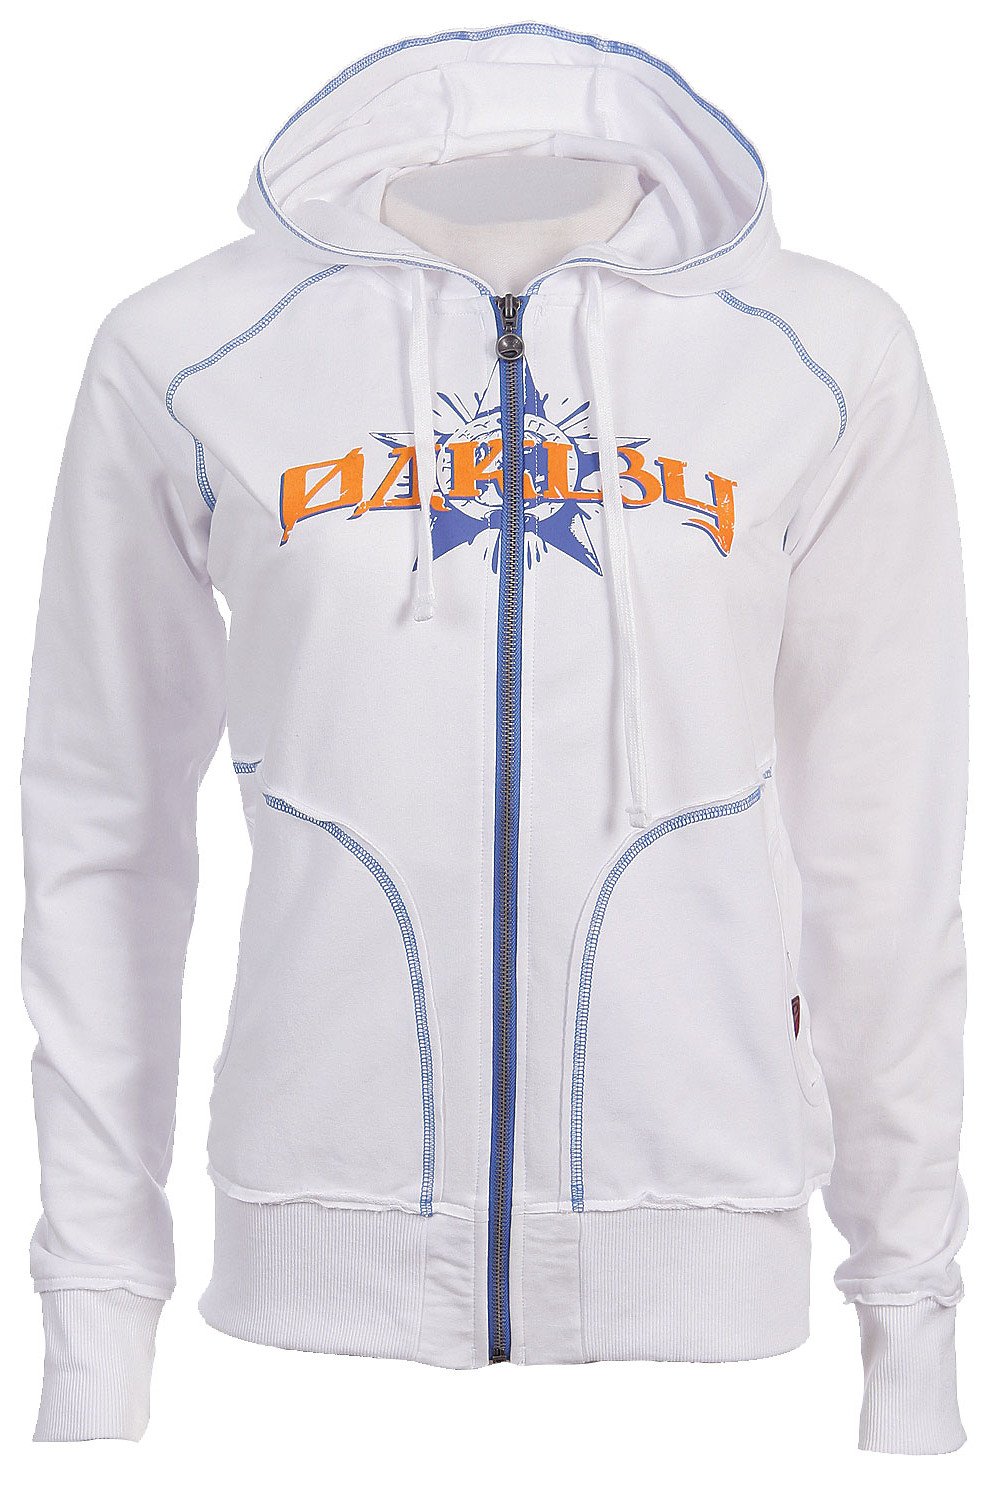 Oakley E Three Zip Hoodie White  oak-e3-hd-wt-w-07.jpg